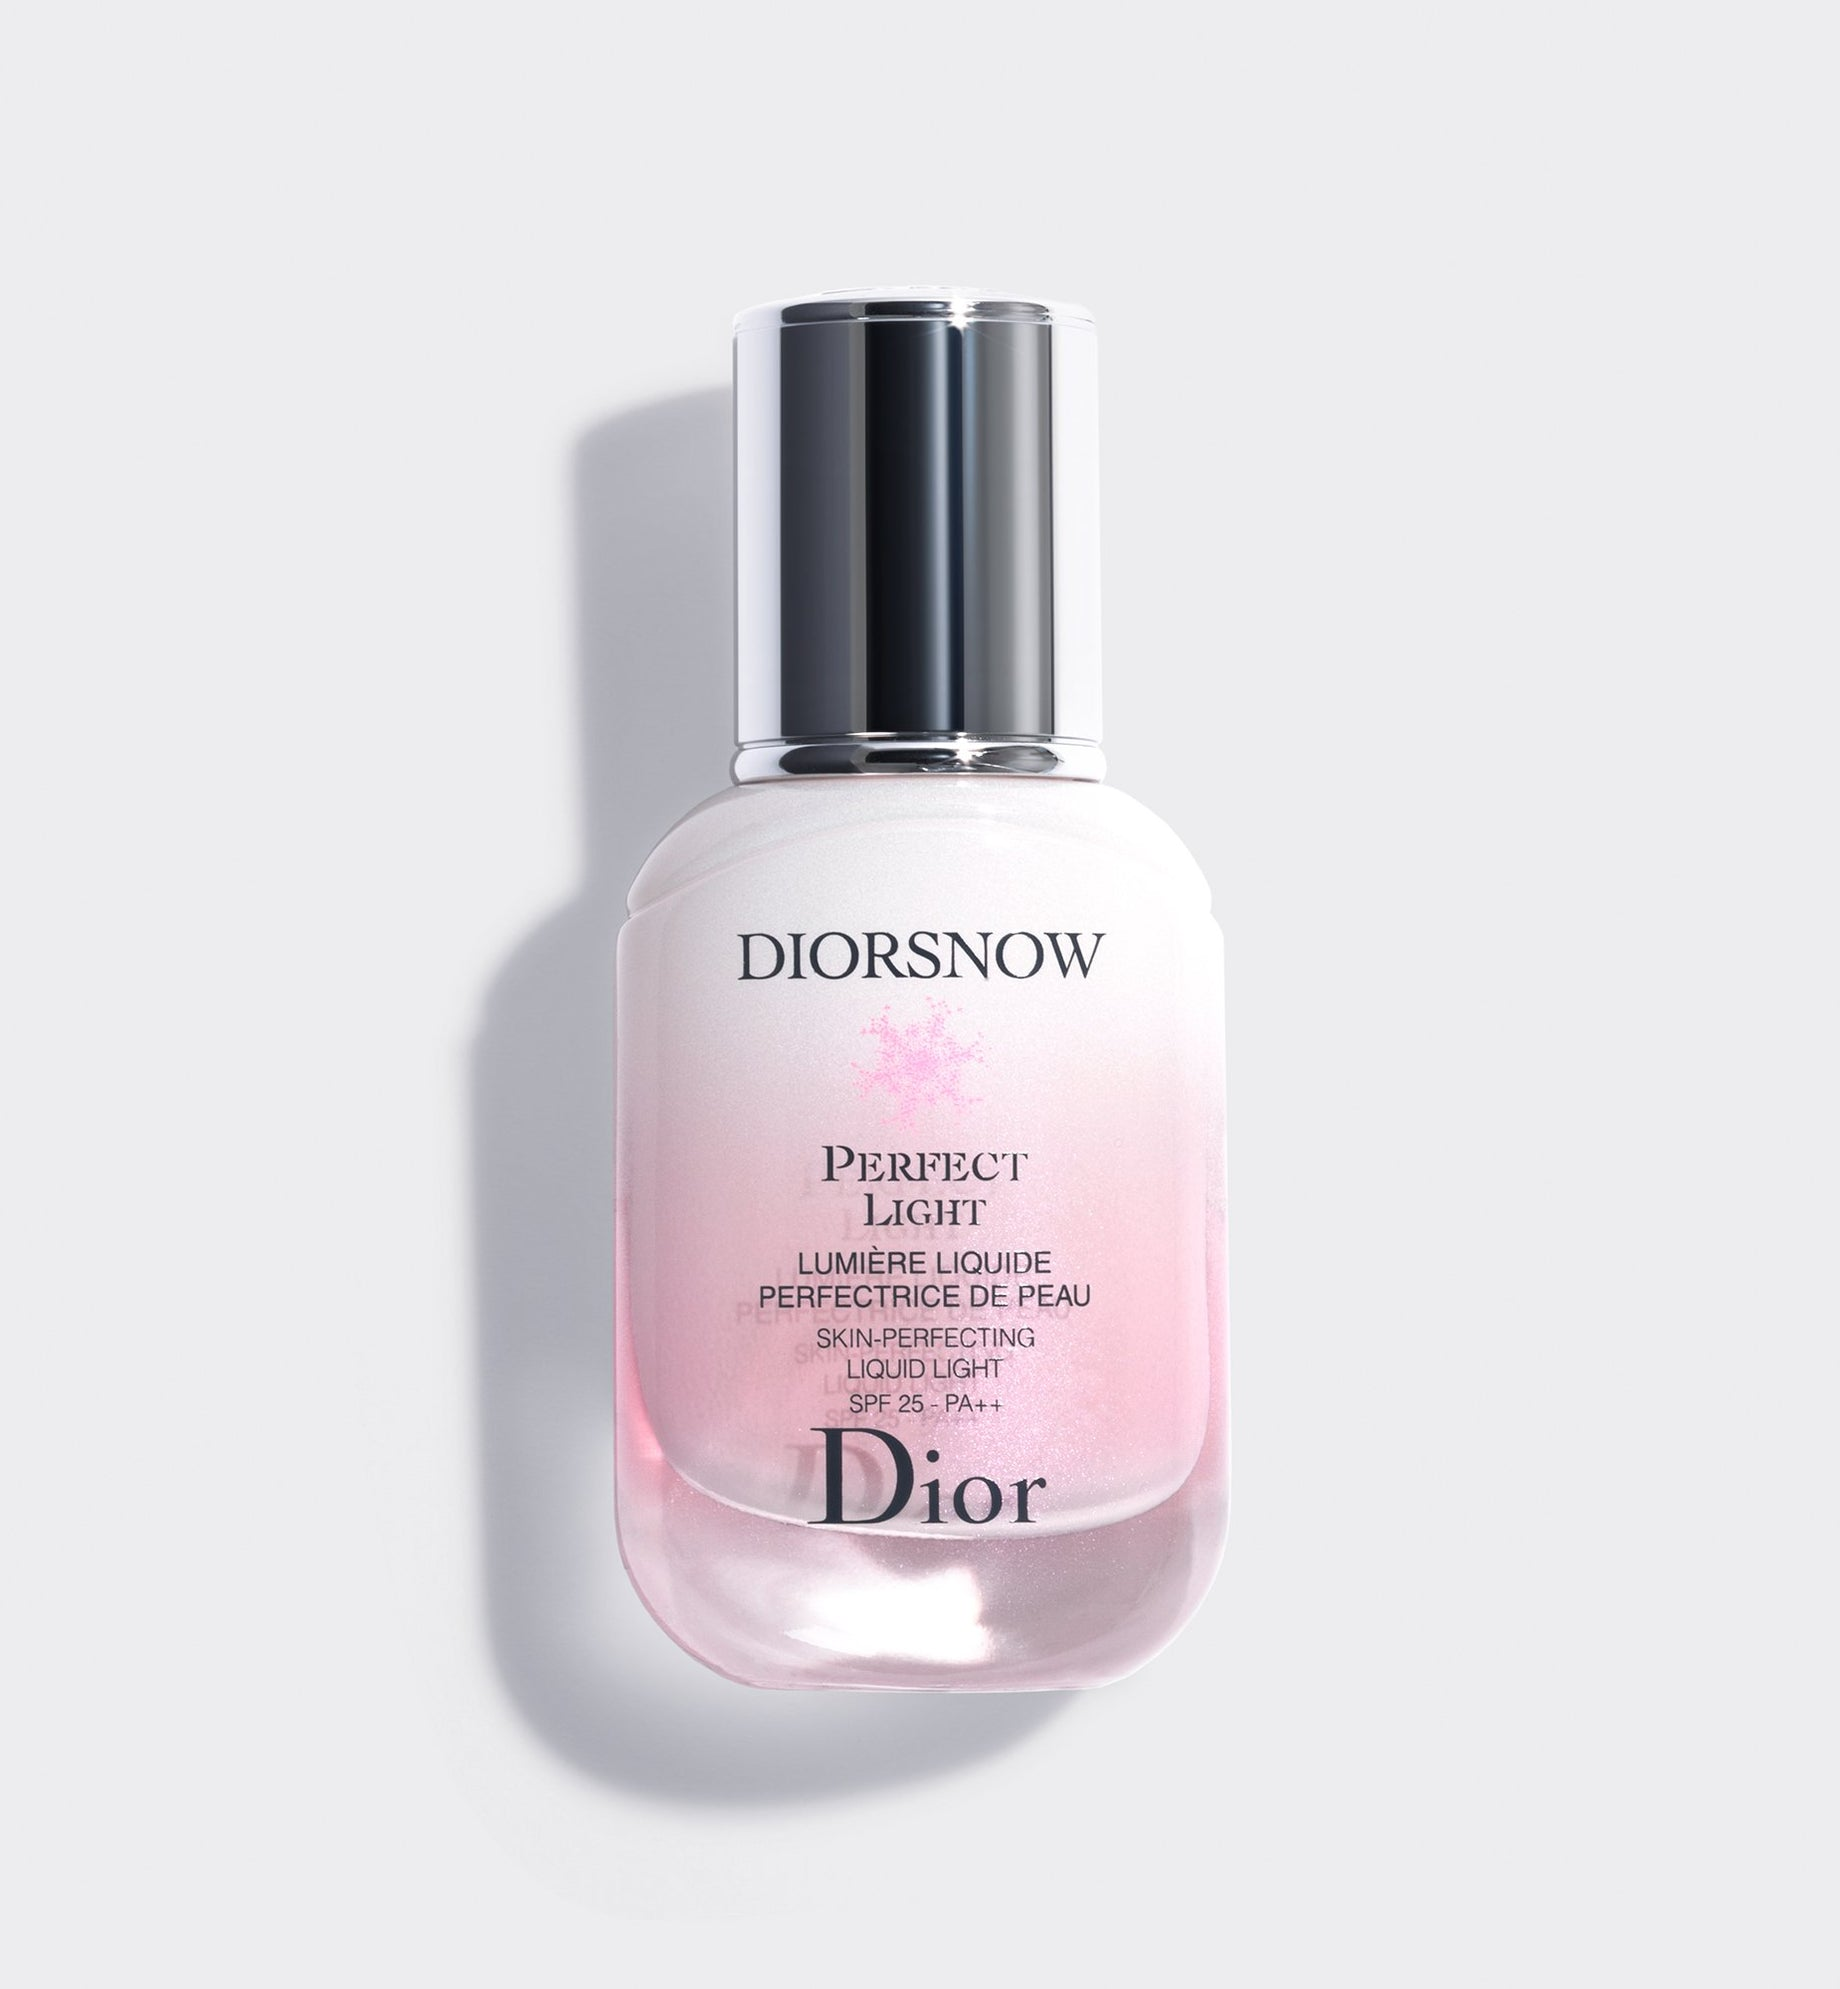 DIORSNOW PERFECT LIGHT - SKIN-PERFECTING LIQUID LIGHT SPF 25 - PA++